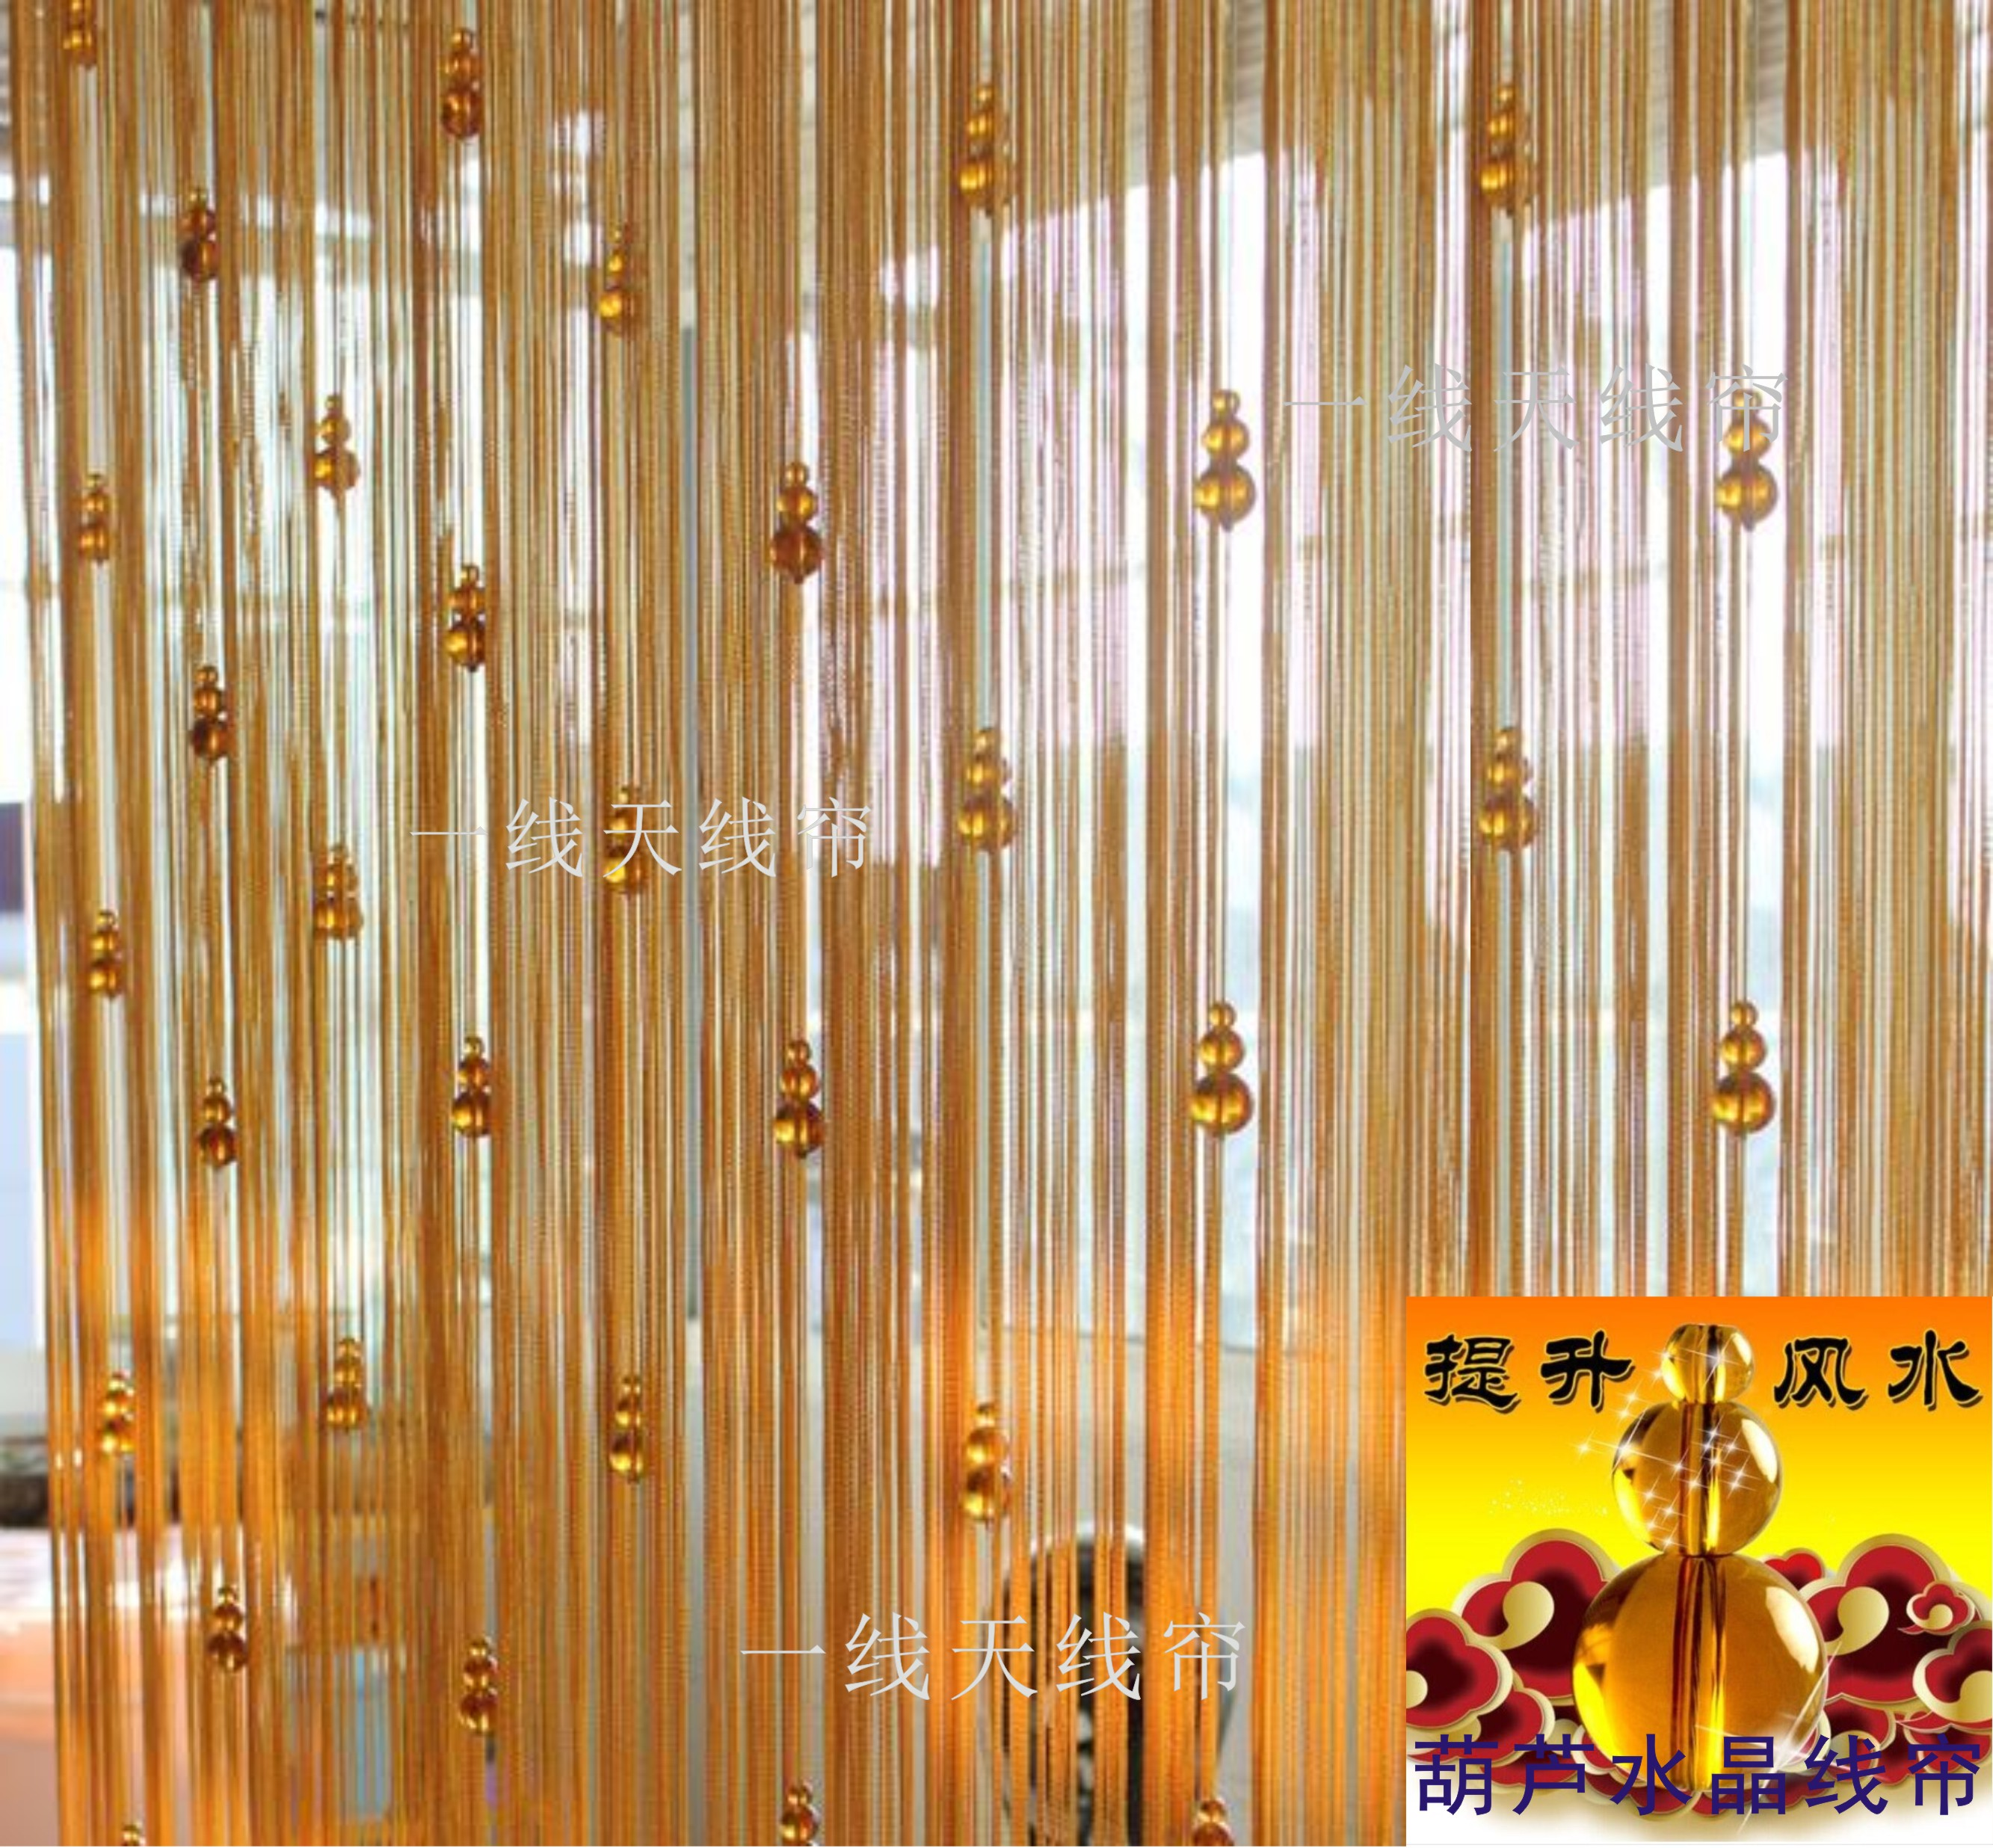 Bead curtain crystal partition curtain finished product crystal bead - Hoist Line Shade Crystal Bead Curtain Cord Shade Finished Product Door Curtain Partition Curtain Luxurious Geopathic